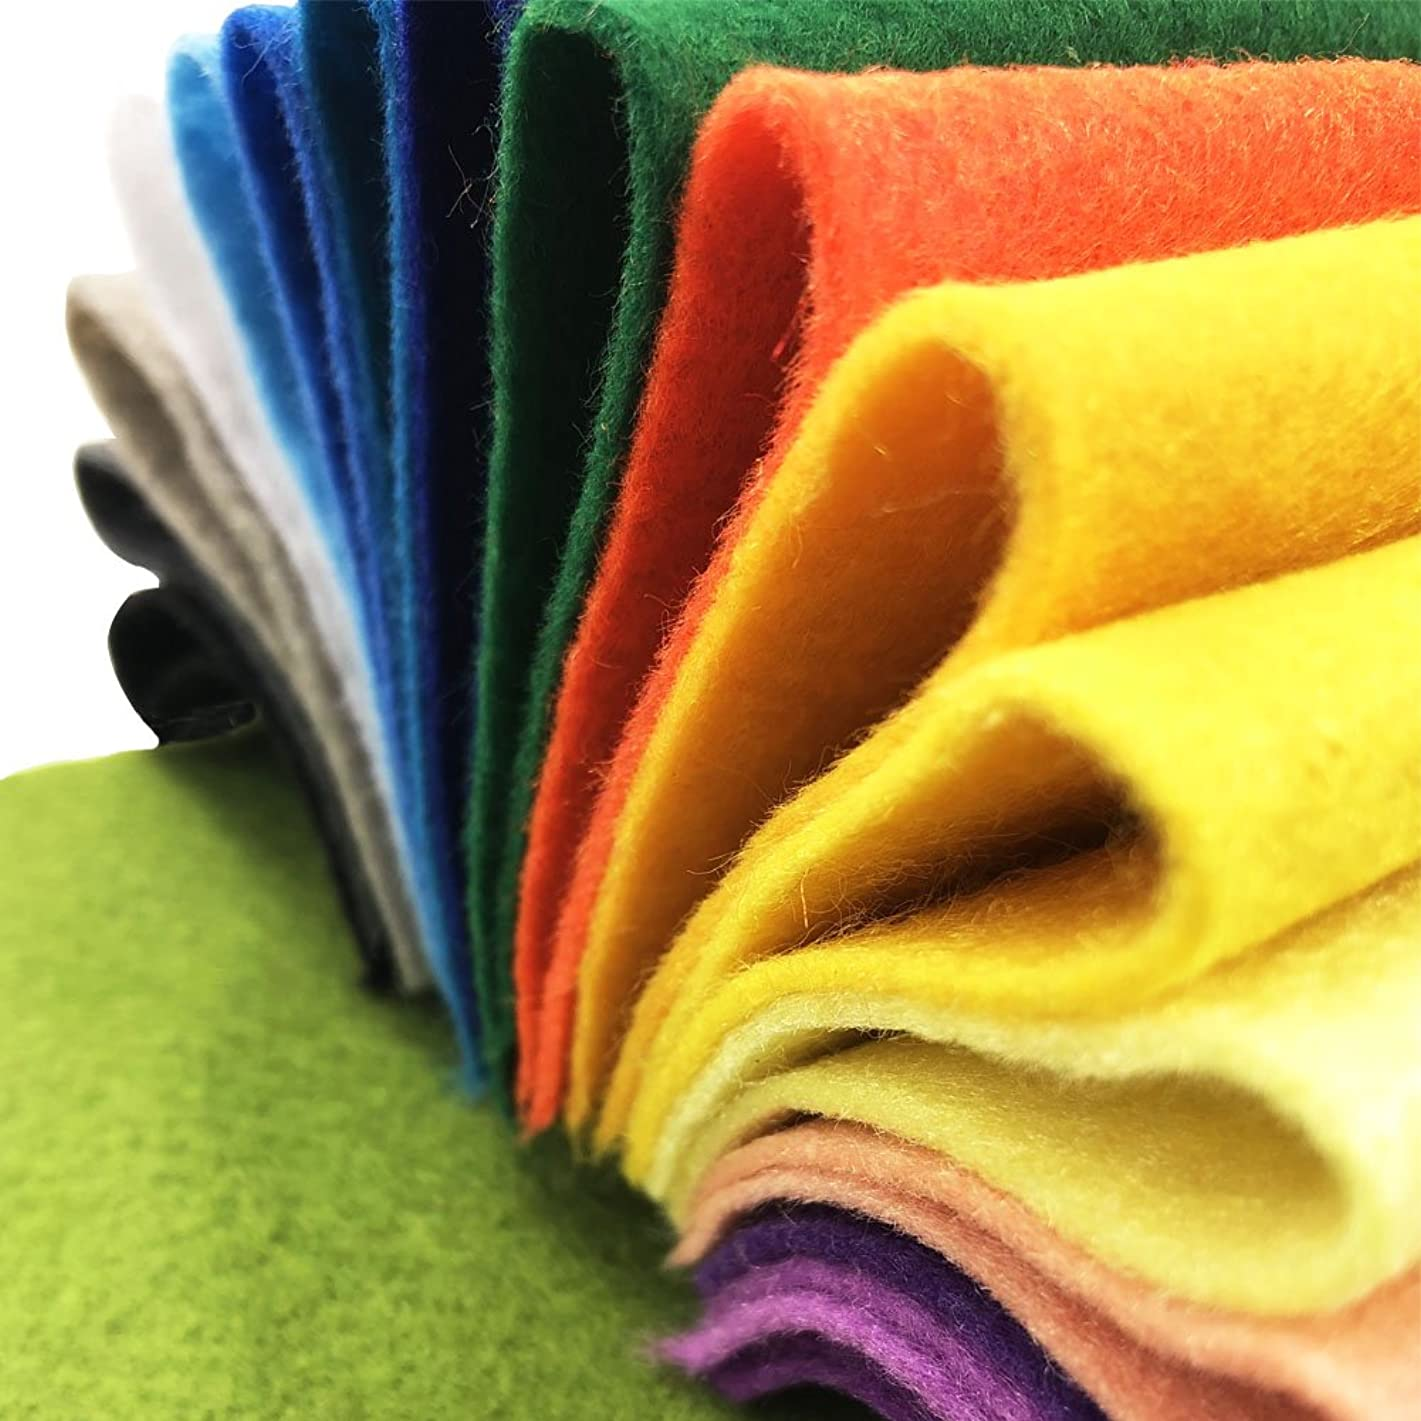 Soft Felt Fabric Squares Sheets, 40 Assorted Candy Colors for Craft, Non Woven Patchwork Sheet Pack 40pcs 6